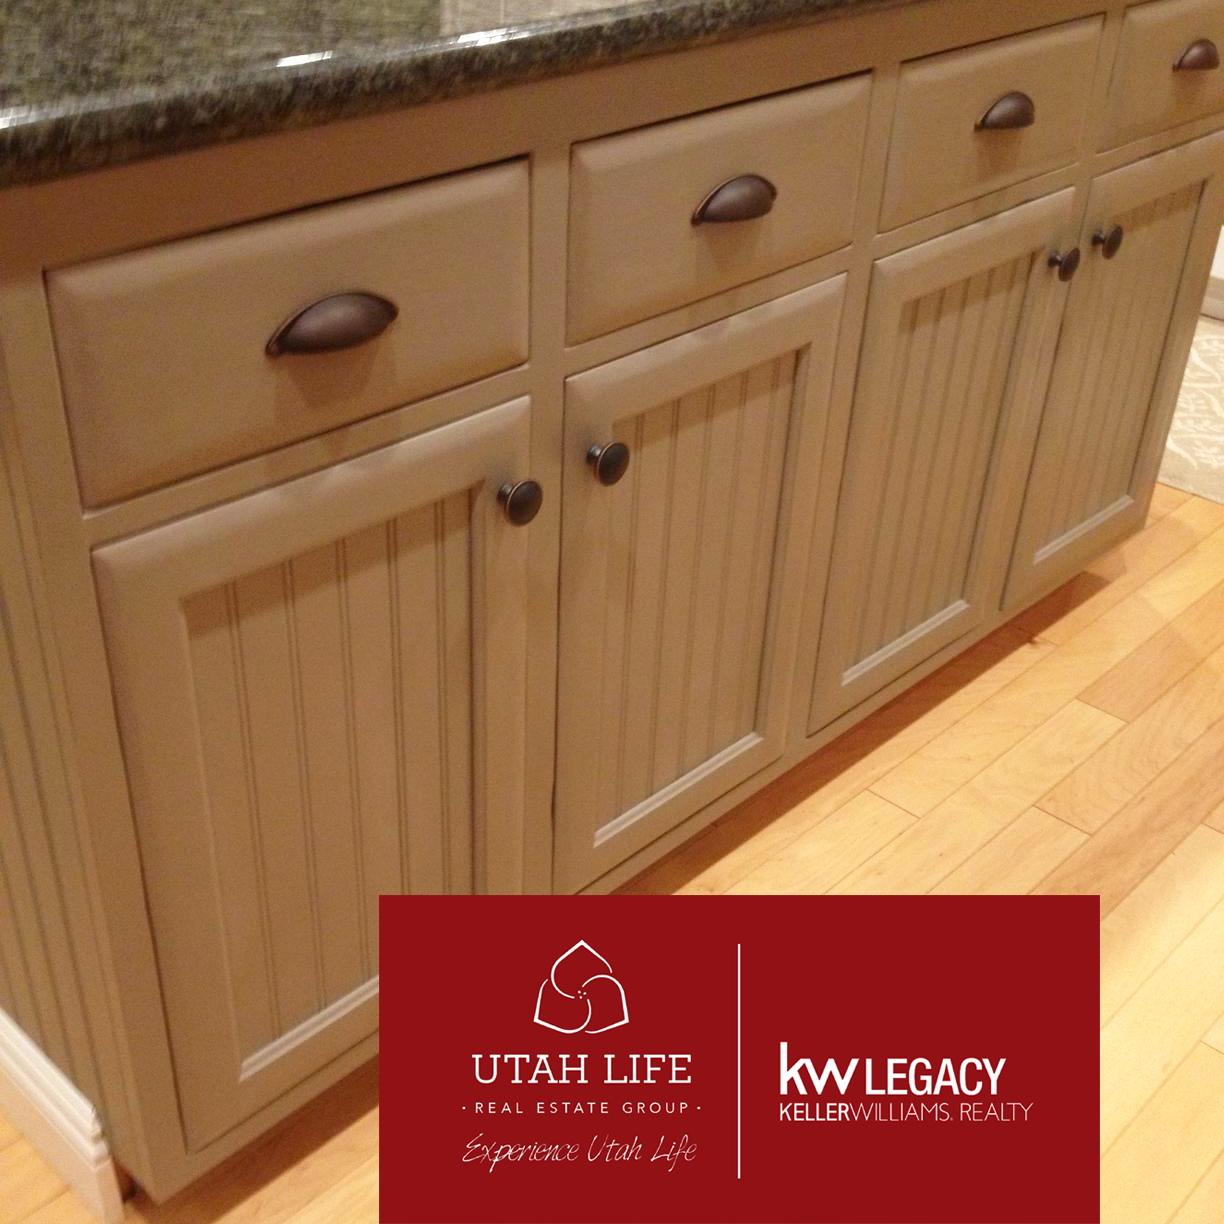 Can You Paint Kitchen Cabinets With Chalk Paint: Refinishing Cabinets? Latex Paint Vs. Chalk Paint